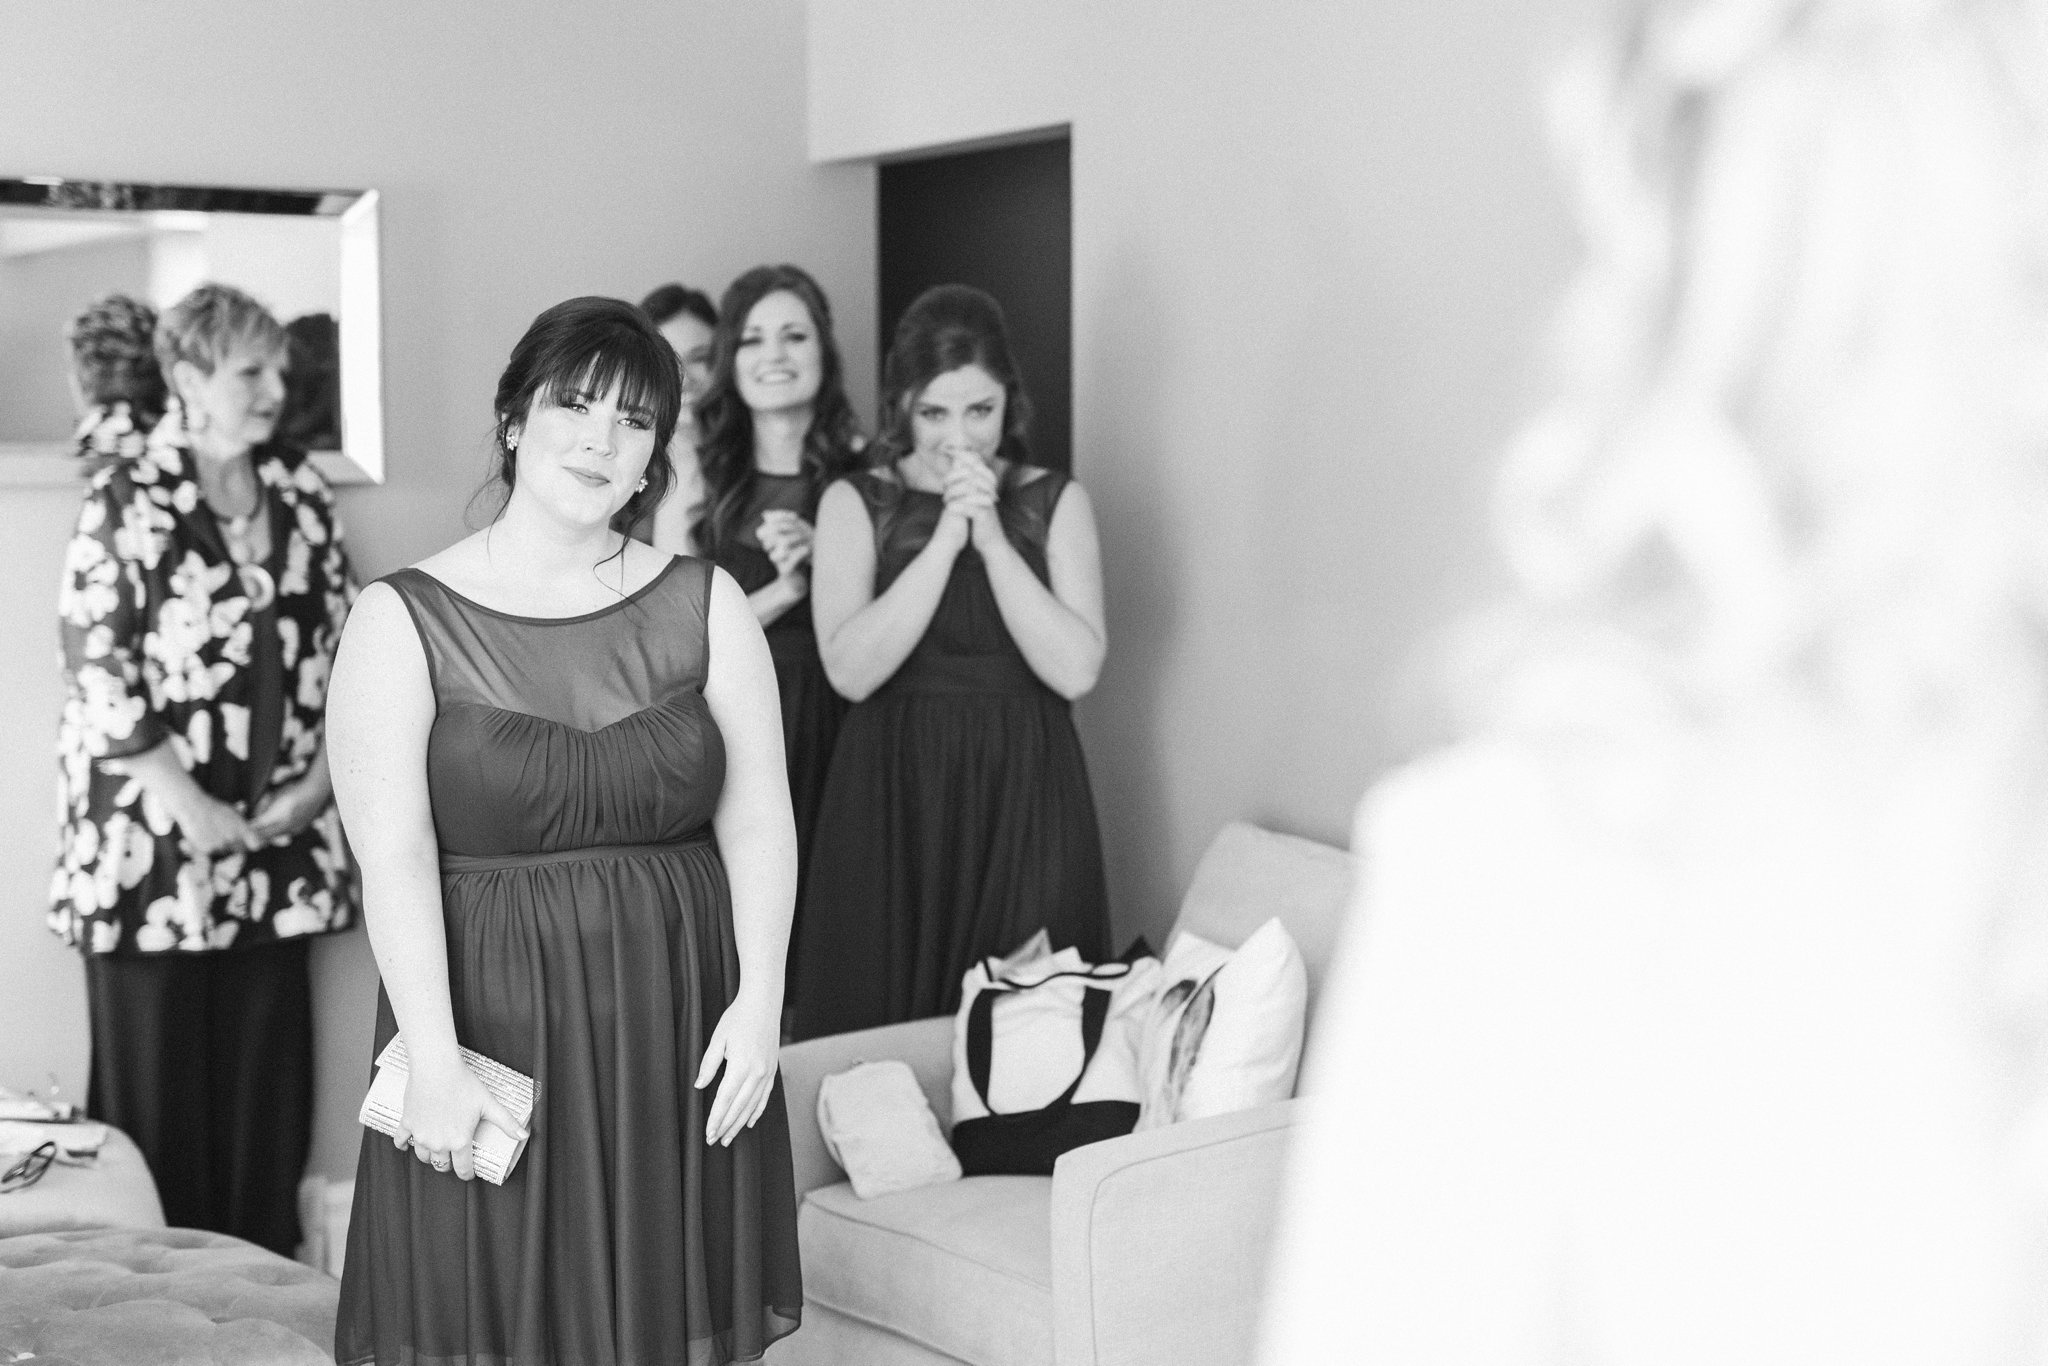 Jabulani vineyard wedding photos, Amy Pinder Photography, Ottawa wedding photographer